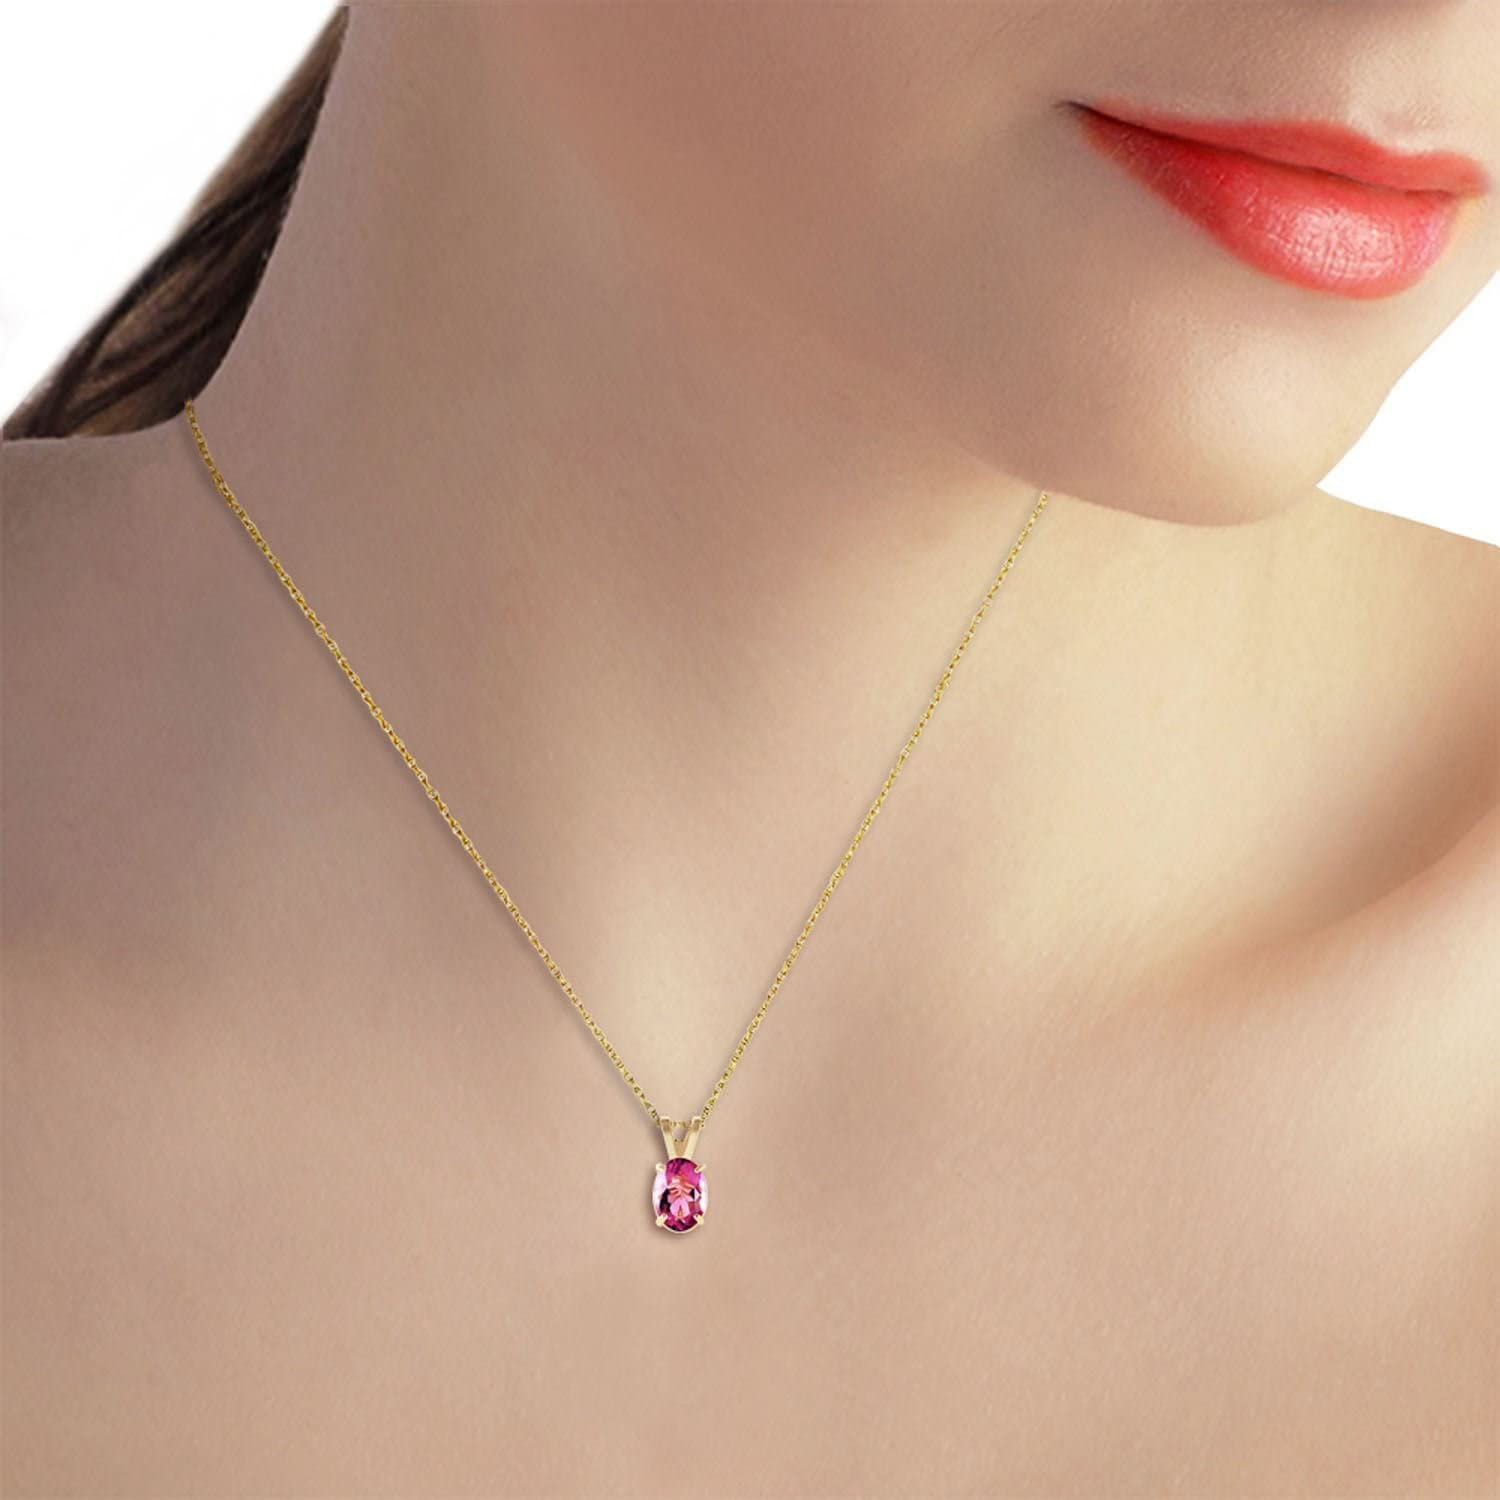 ALARRI 0.85 Carat 14K Solid Gold Heart Asks Mind Pink Topaz Necklace with 22 Inch Chain Length